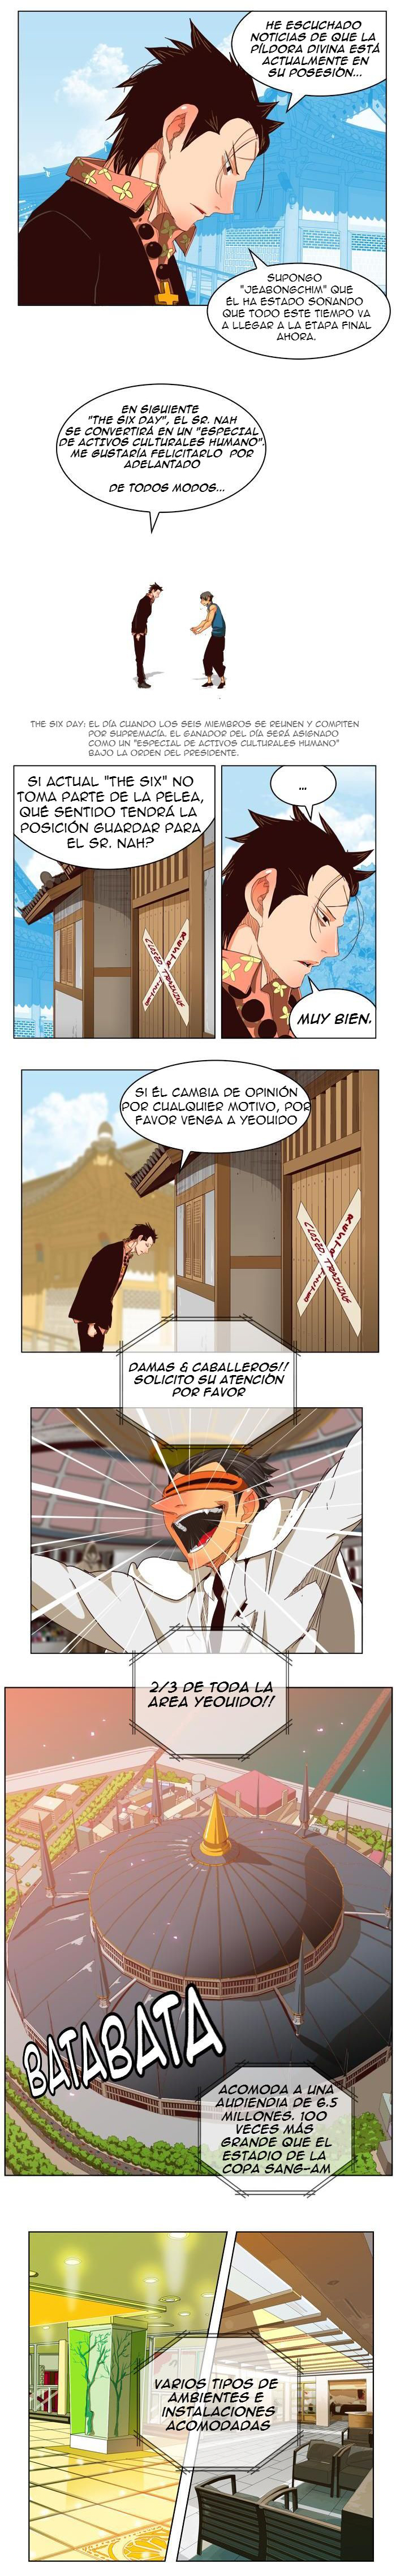 http://c5.ninemanga.com/es_manga/37/485/454636/e6e31529675d0ef99d777d729c423382.jpg Page 2